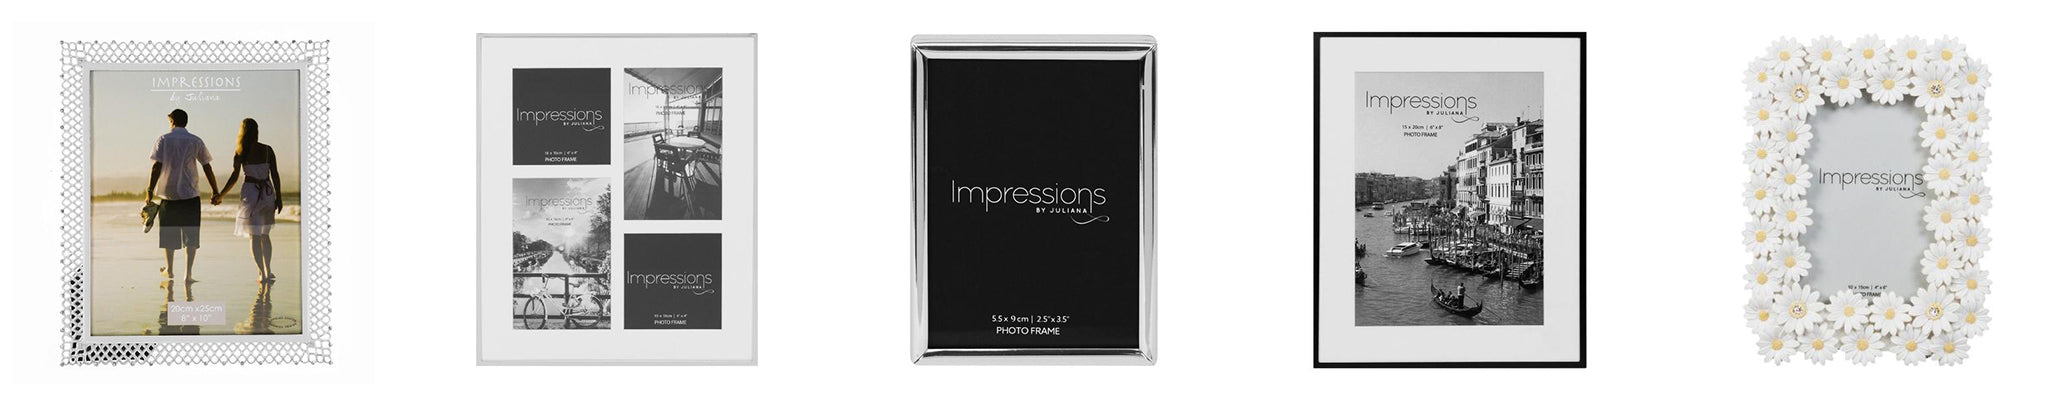 impressions sell multi photo frames, a4 photo frames, gold, silver photo frames and more